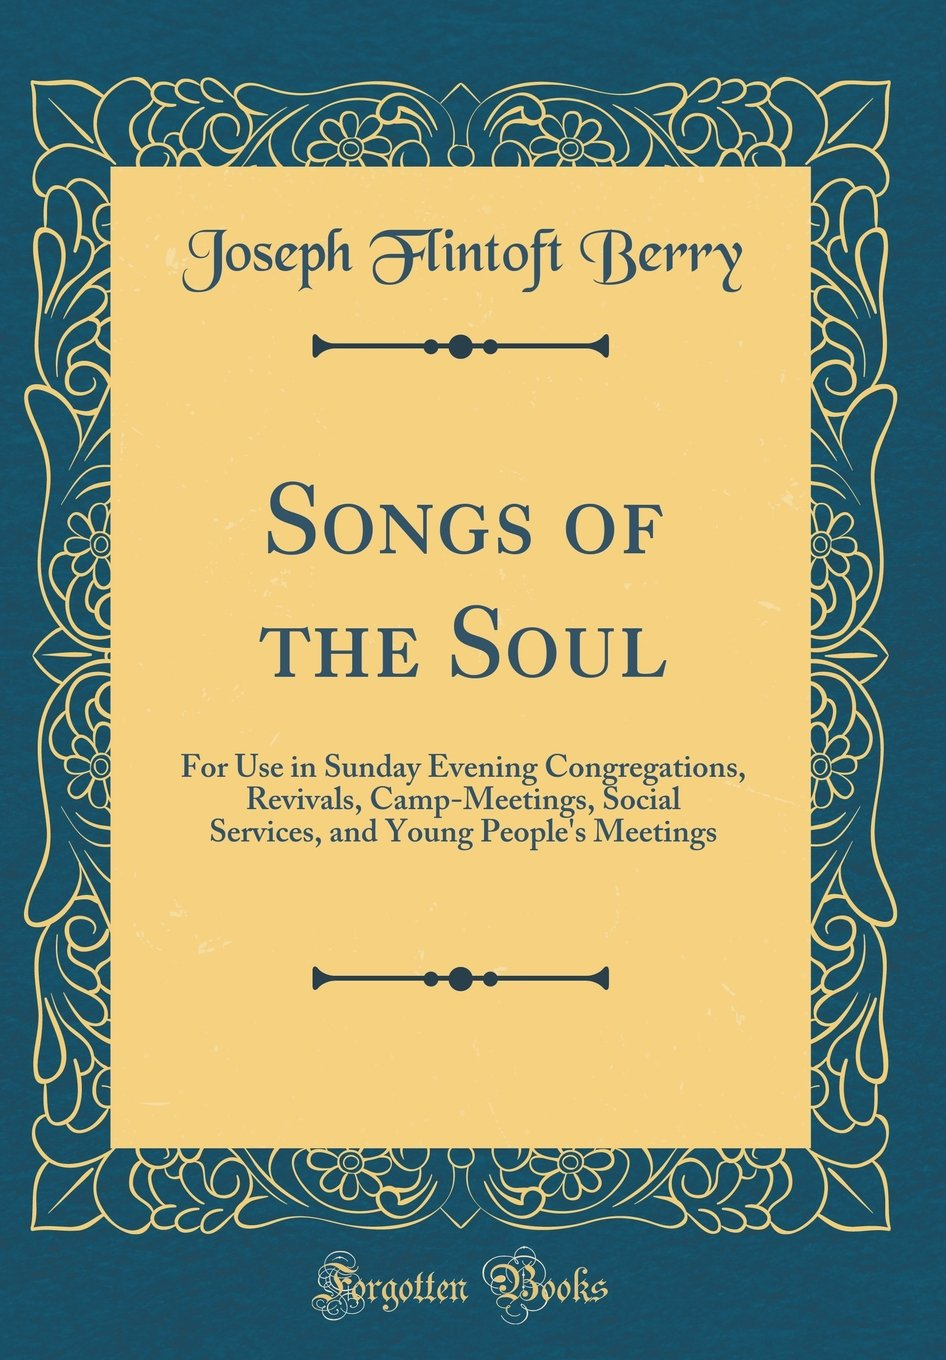 Read Online Songs of the Soul: For Use in Sunday Evening Congregations, Revivals, Camp-Meetings, Social Services, and Young People's Meetings (Classic Reprint) ebook